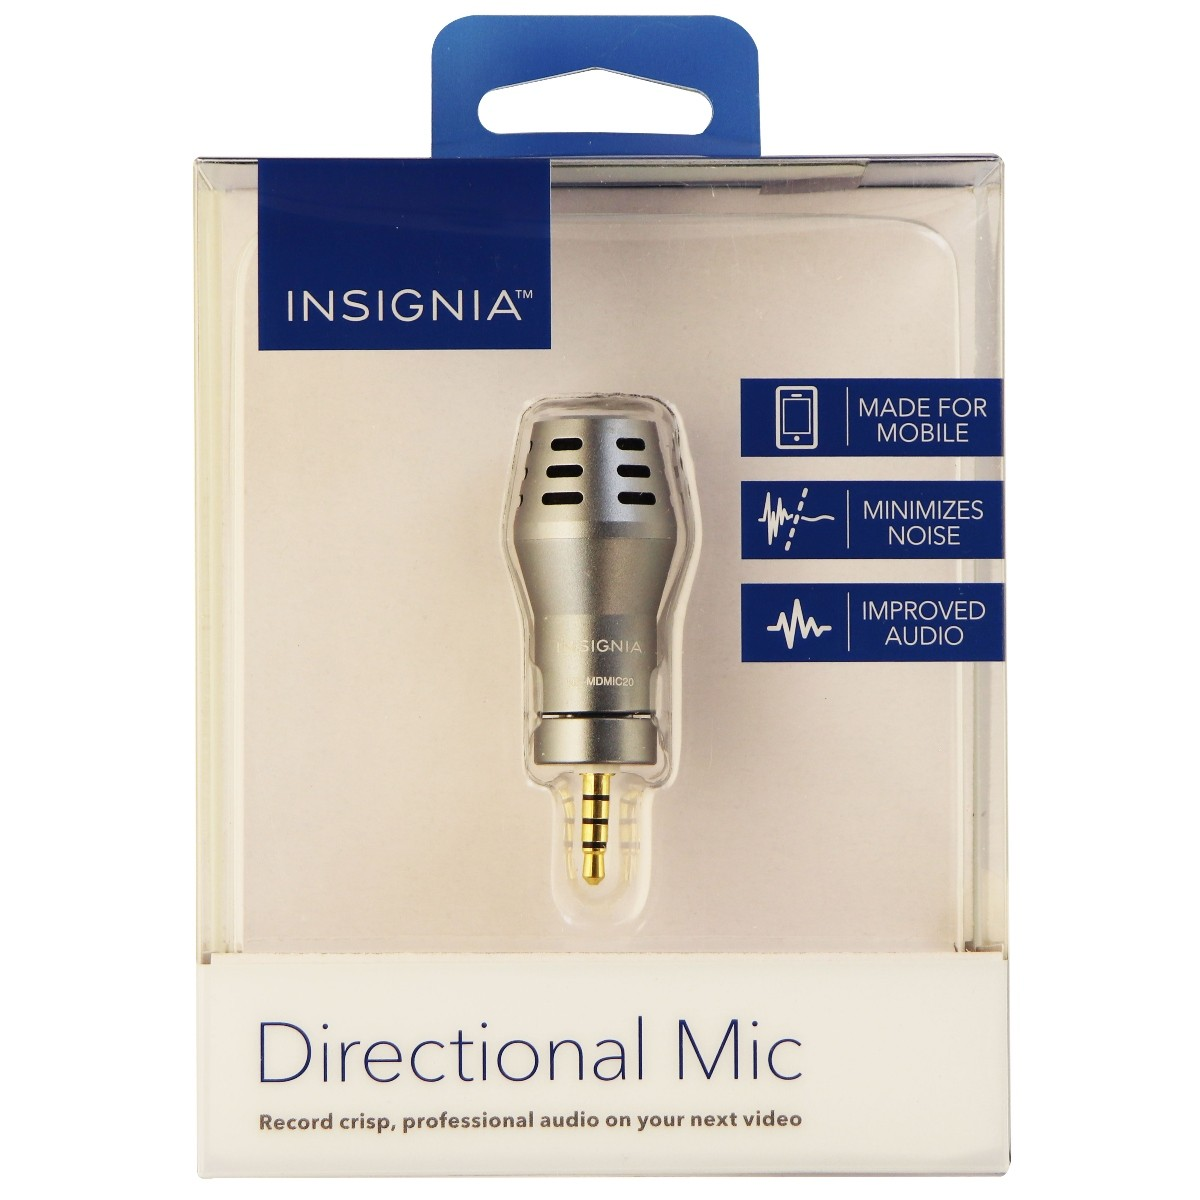 Insignia - Directional Microphone for Smartphones and tablets - Gray